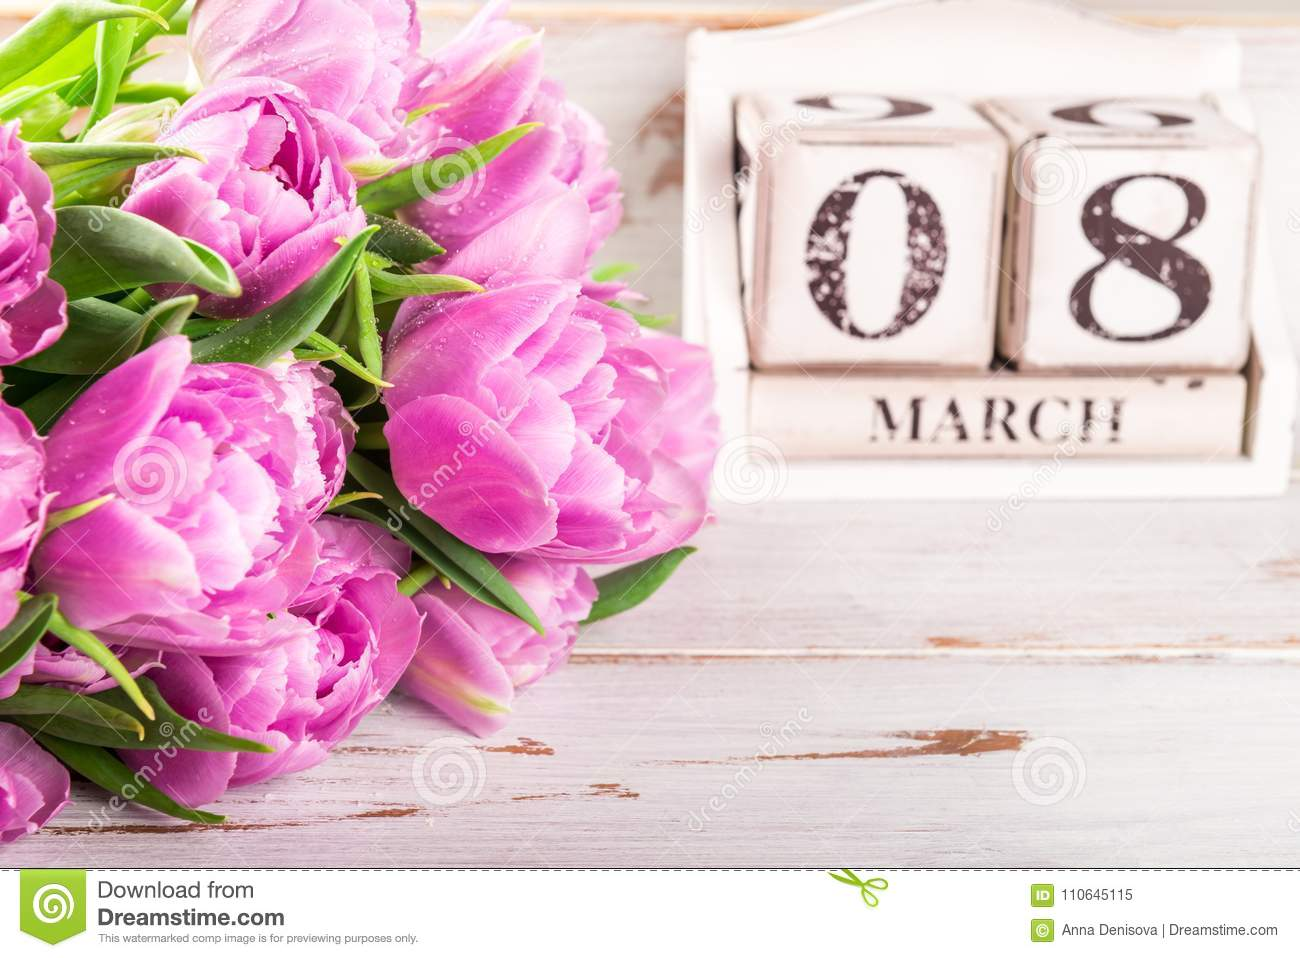 Wooden Block with International Womens Day Date, 8 March